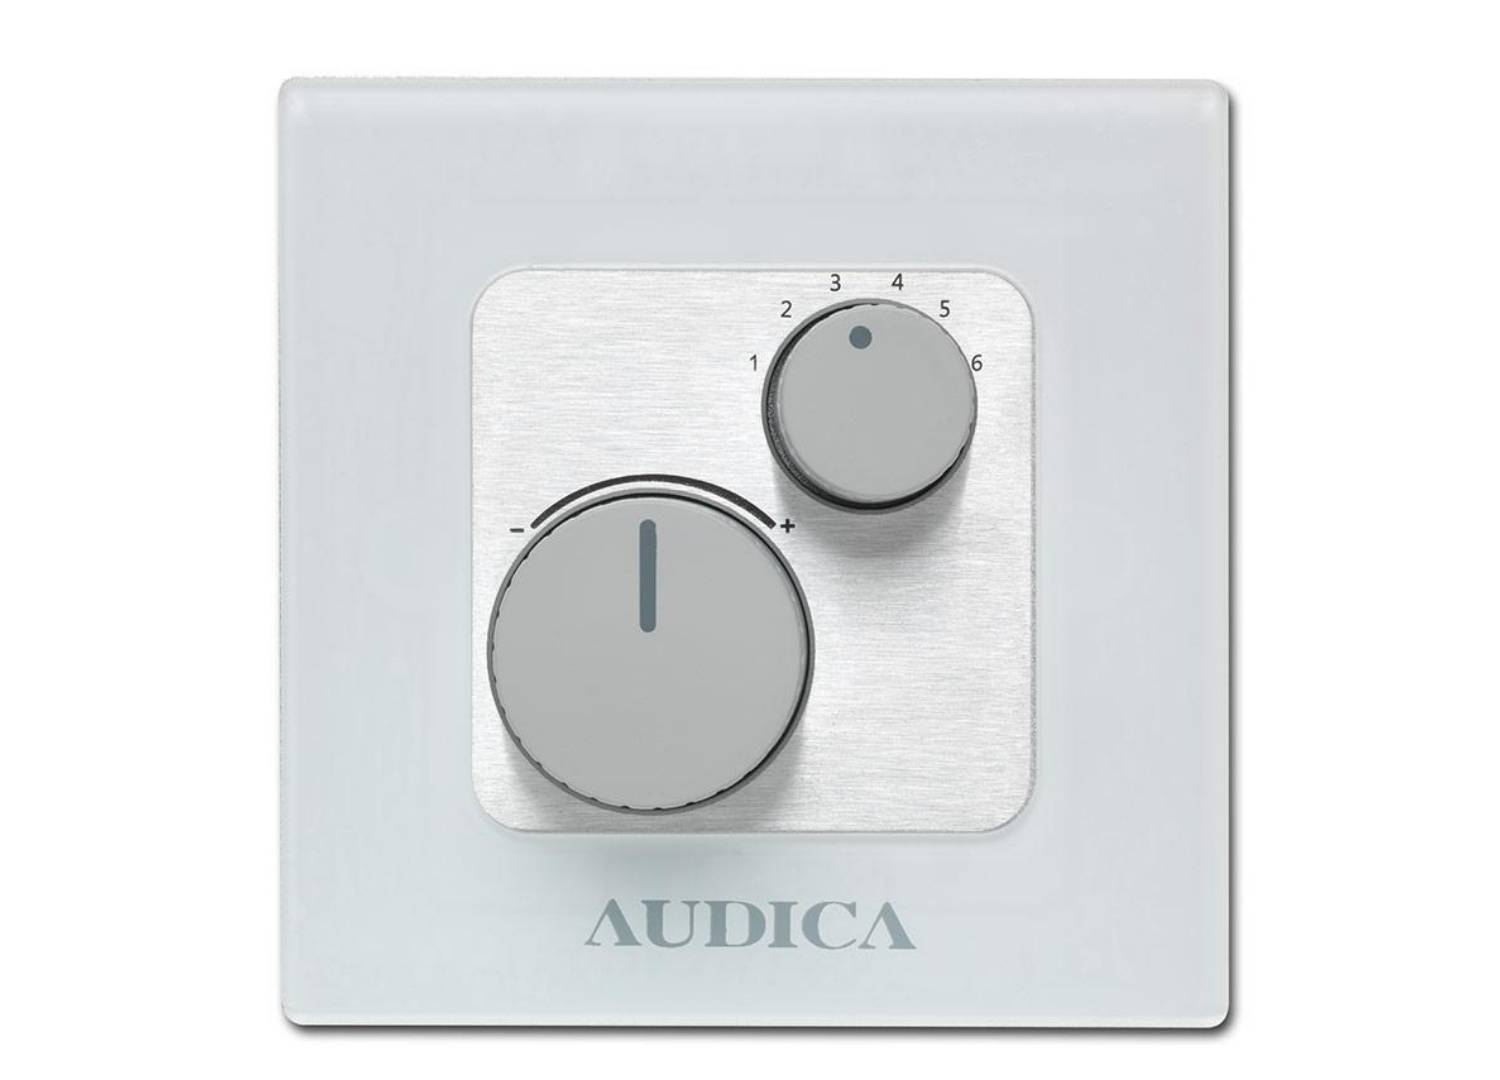 Audica Wall Volume Control